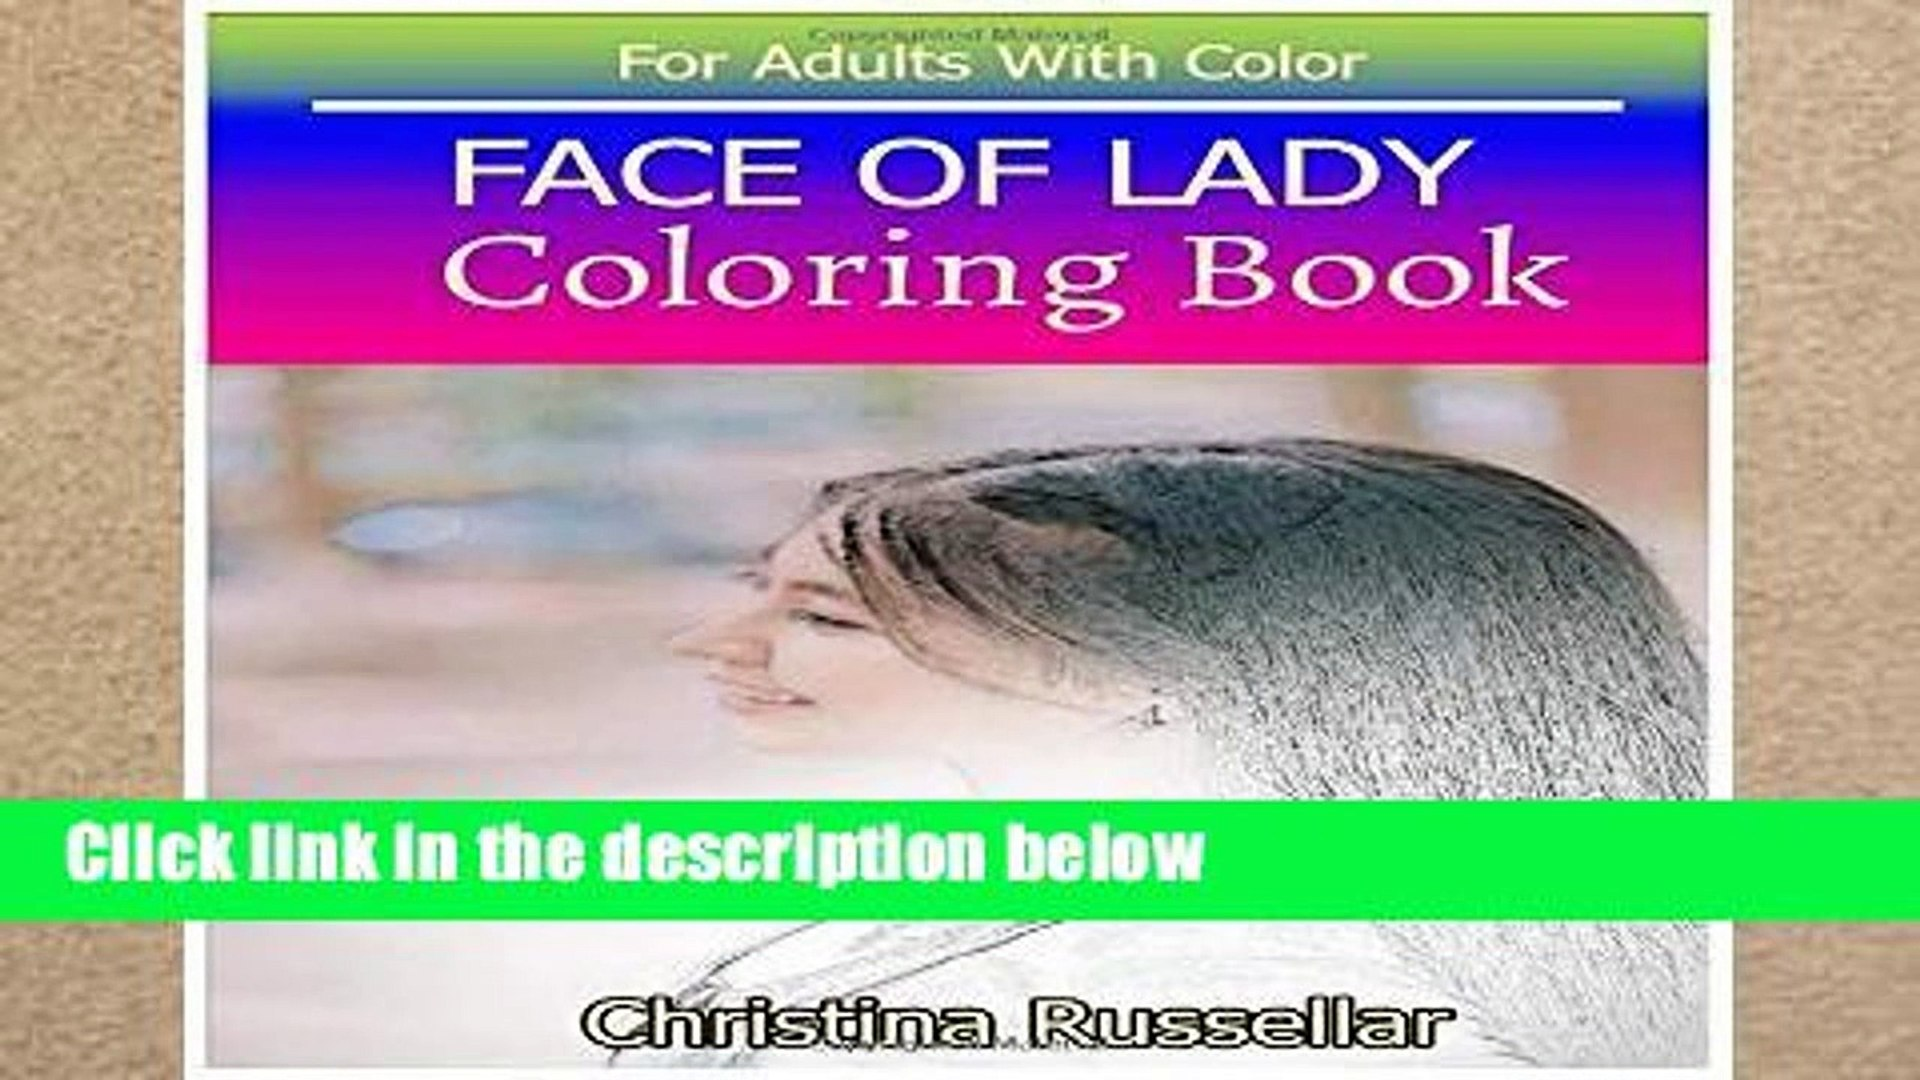 [P.D.F] FACE OF LADY Coloring Book For Adults With Color: FACE OF LADY  sketch coloring book 80